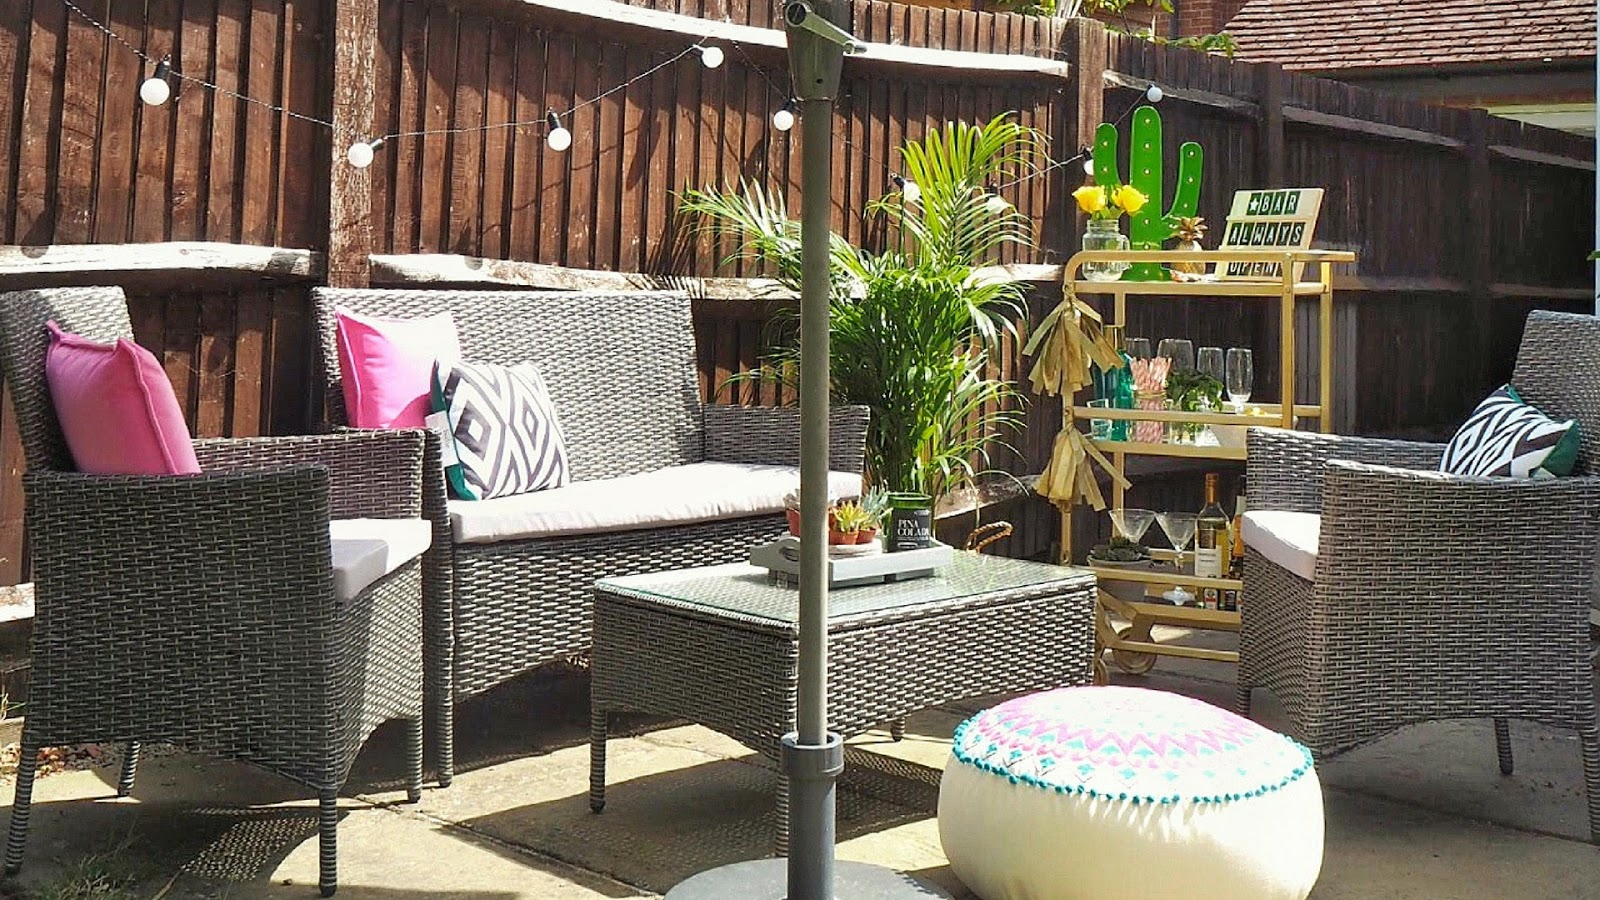 seven summer garden must-haves including outdoor sofa, chiminea, fire pit, bistro seating, festoon lights, glass drinks dispenser and egg chair.